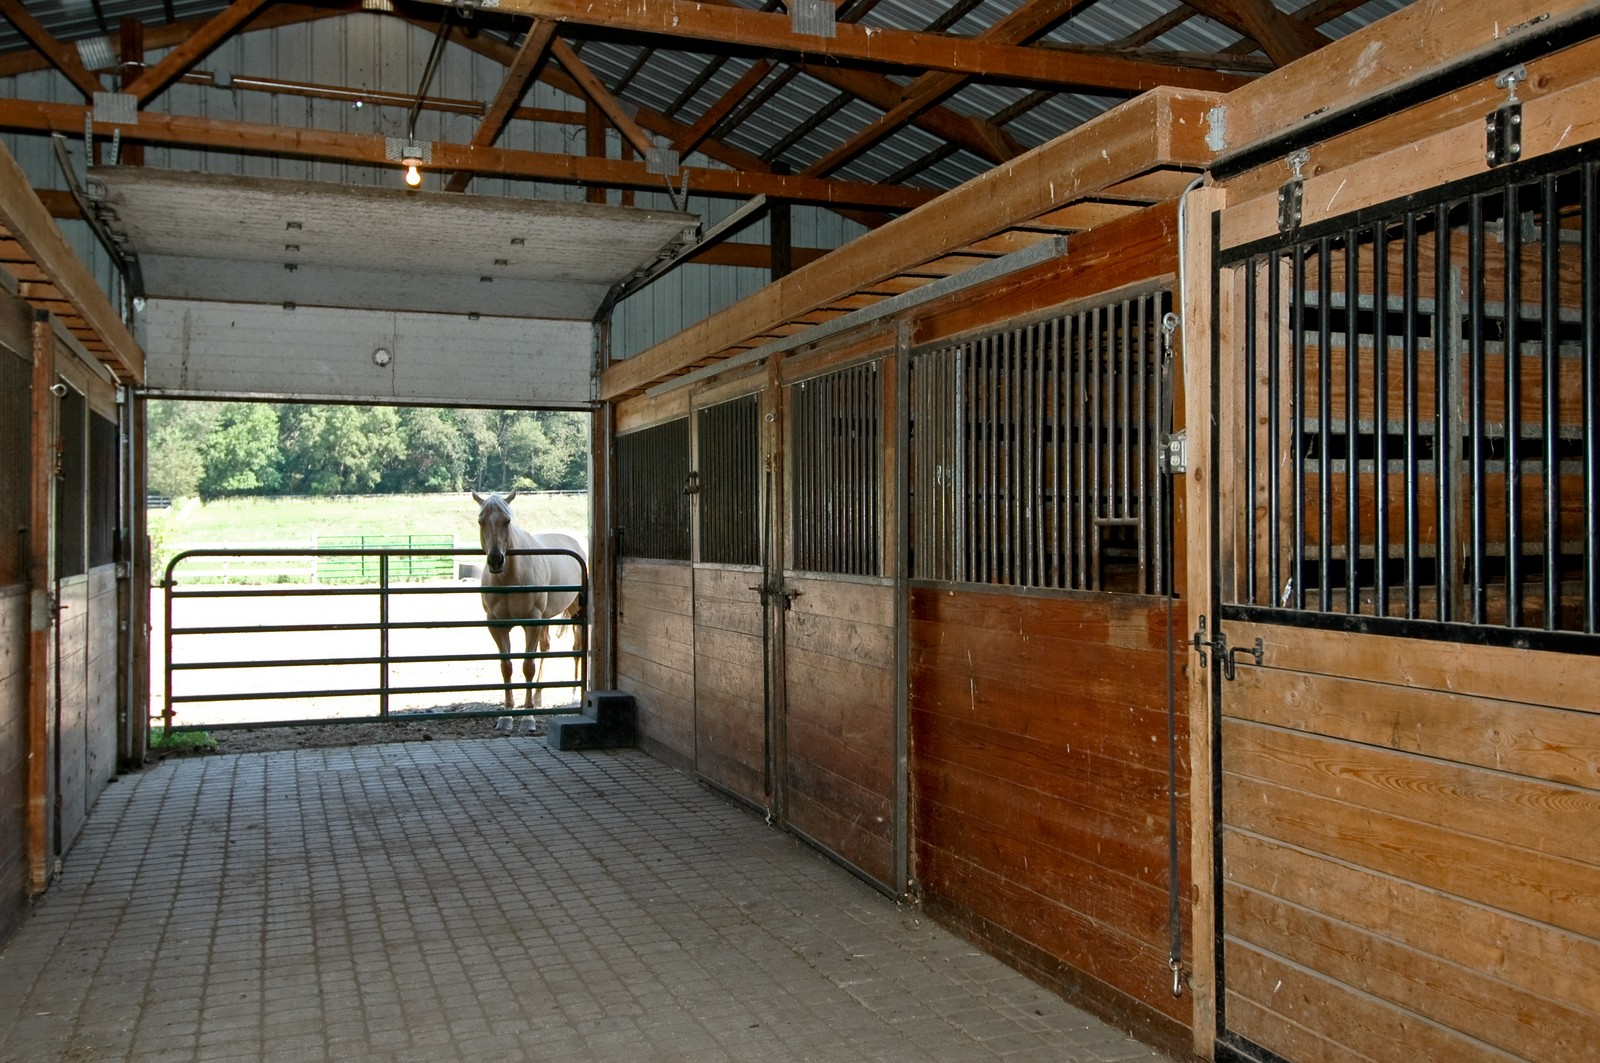 Real Estate Photography - 40W960 Chippewa Pass, Elgin, IL, 60124 - 5 Stall Barn Includes 1 Birthing Stall